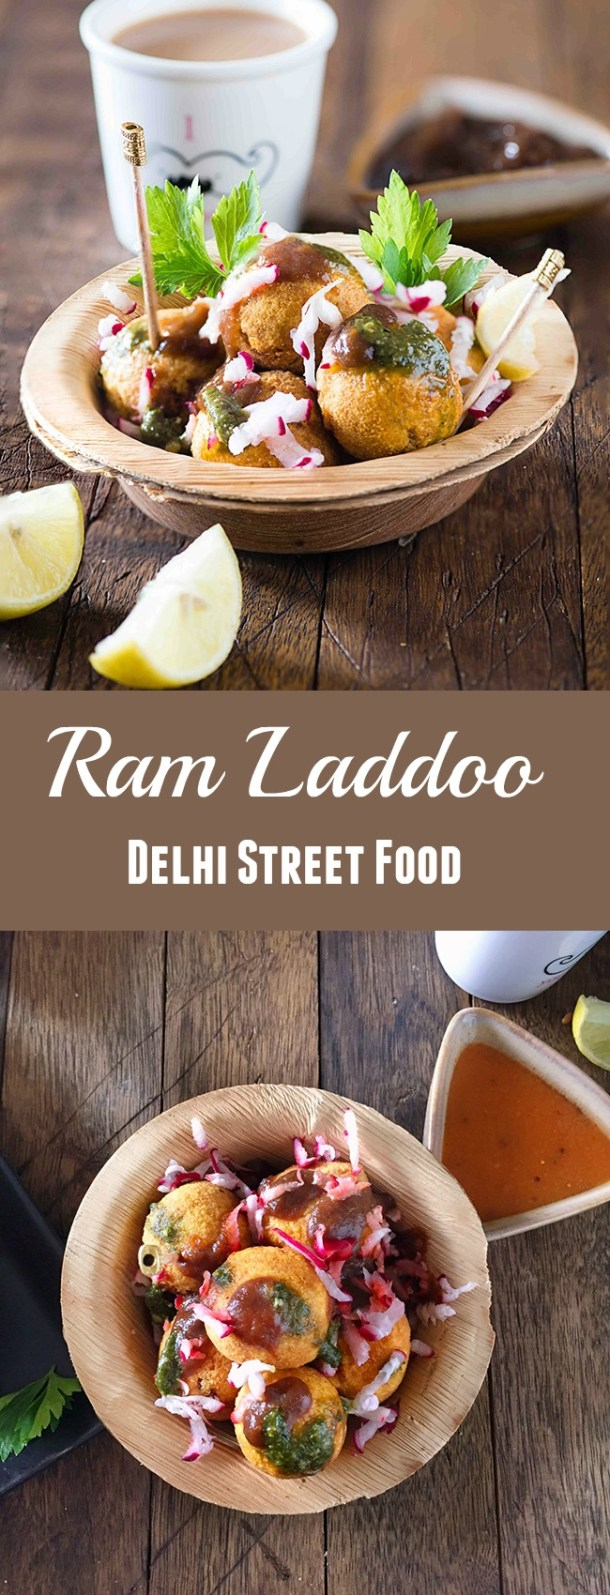 Ram laddoo is crispy outside and fluffy inside topped with green chutney and radish is best Indian street-side snack ever in winters you can find on Delhi streets. Ram laddoo is the only deep fried snack that I can't resist most of the times. Till the date of all the ram laddoos chaat I have tried best Ramladdoo in Delhi, I got in Lajpat Nagar Market